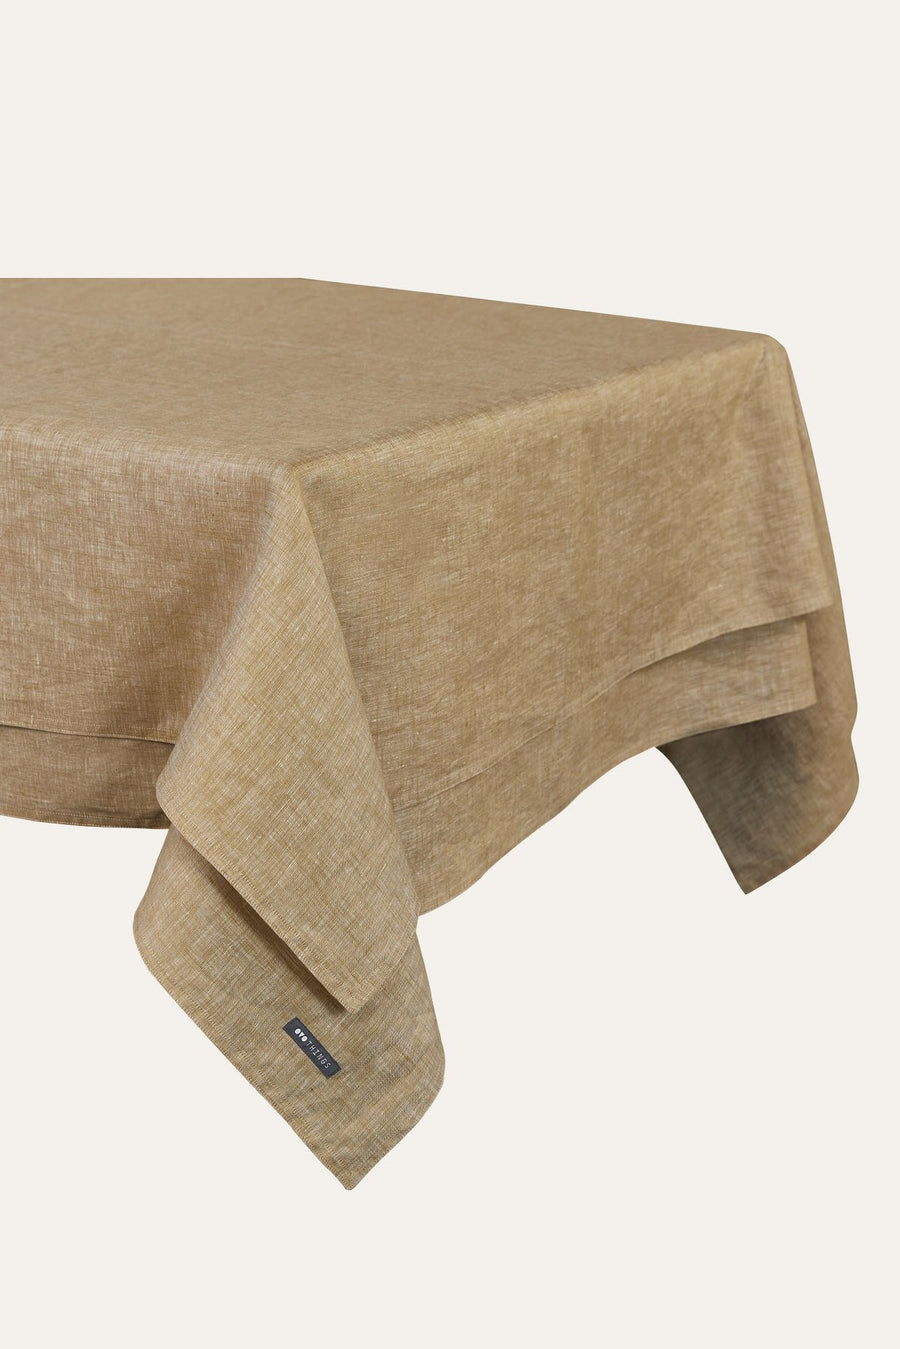 Linen Tablecloth in Sand